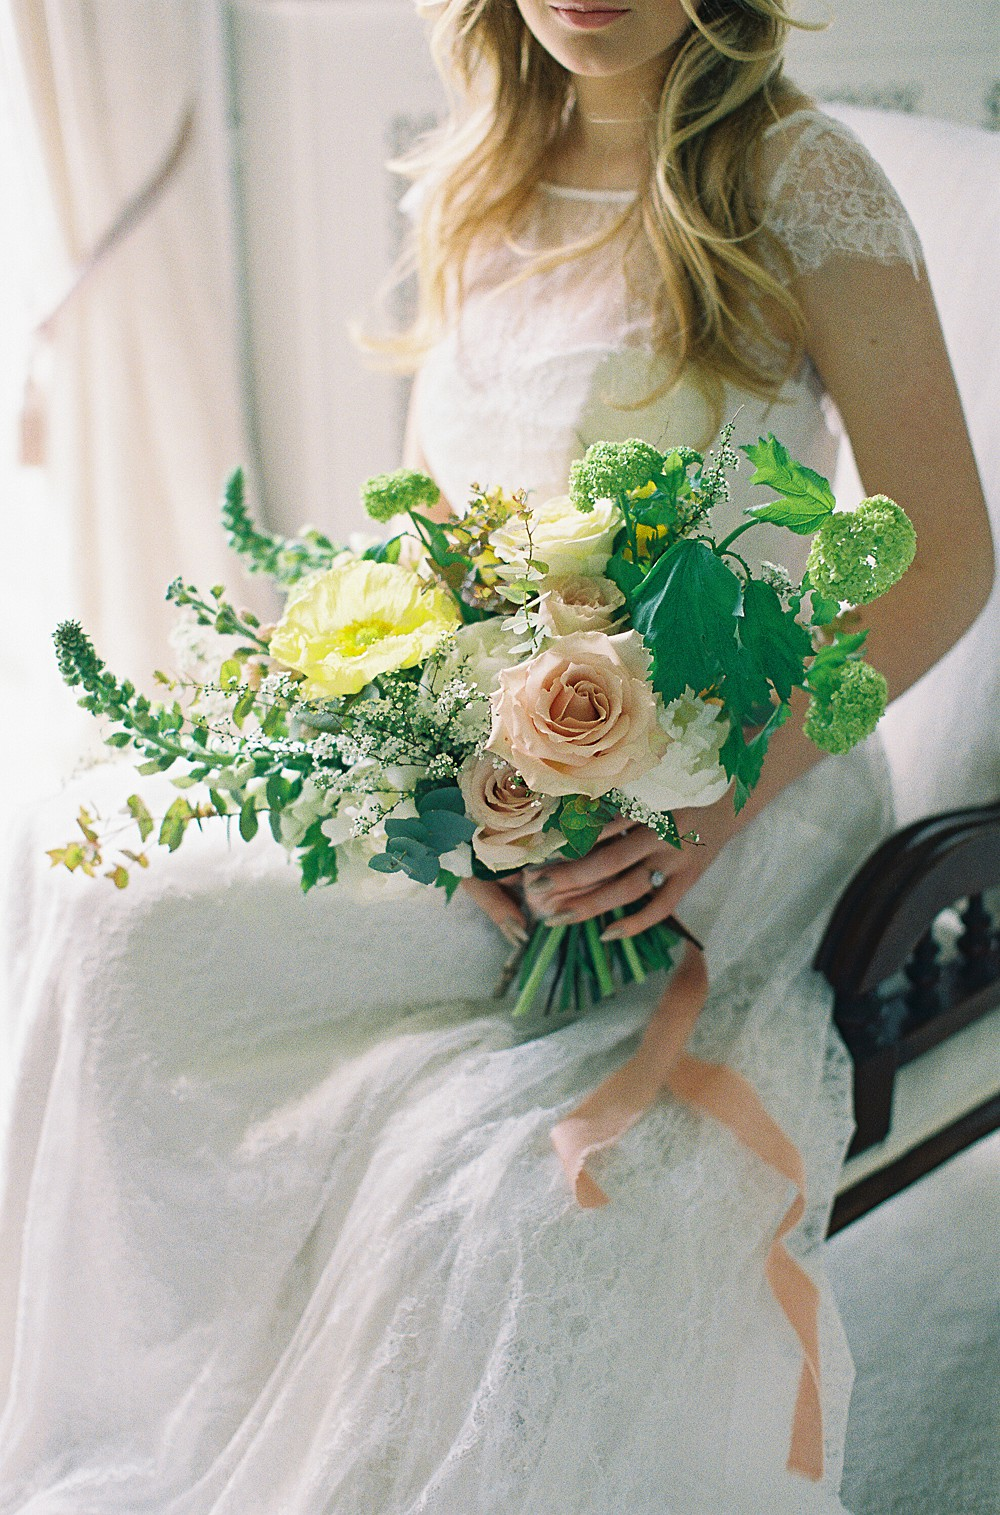 "Image by <a class=""text-taupe-100"" href=""http://lizbakerphotography.co.uk"" target=""_blank"">Liz Baker Photography</a>."